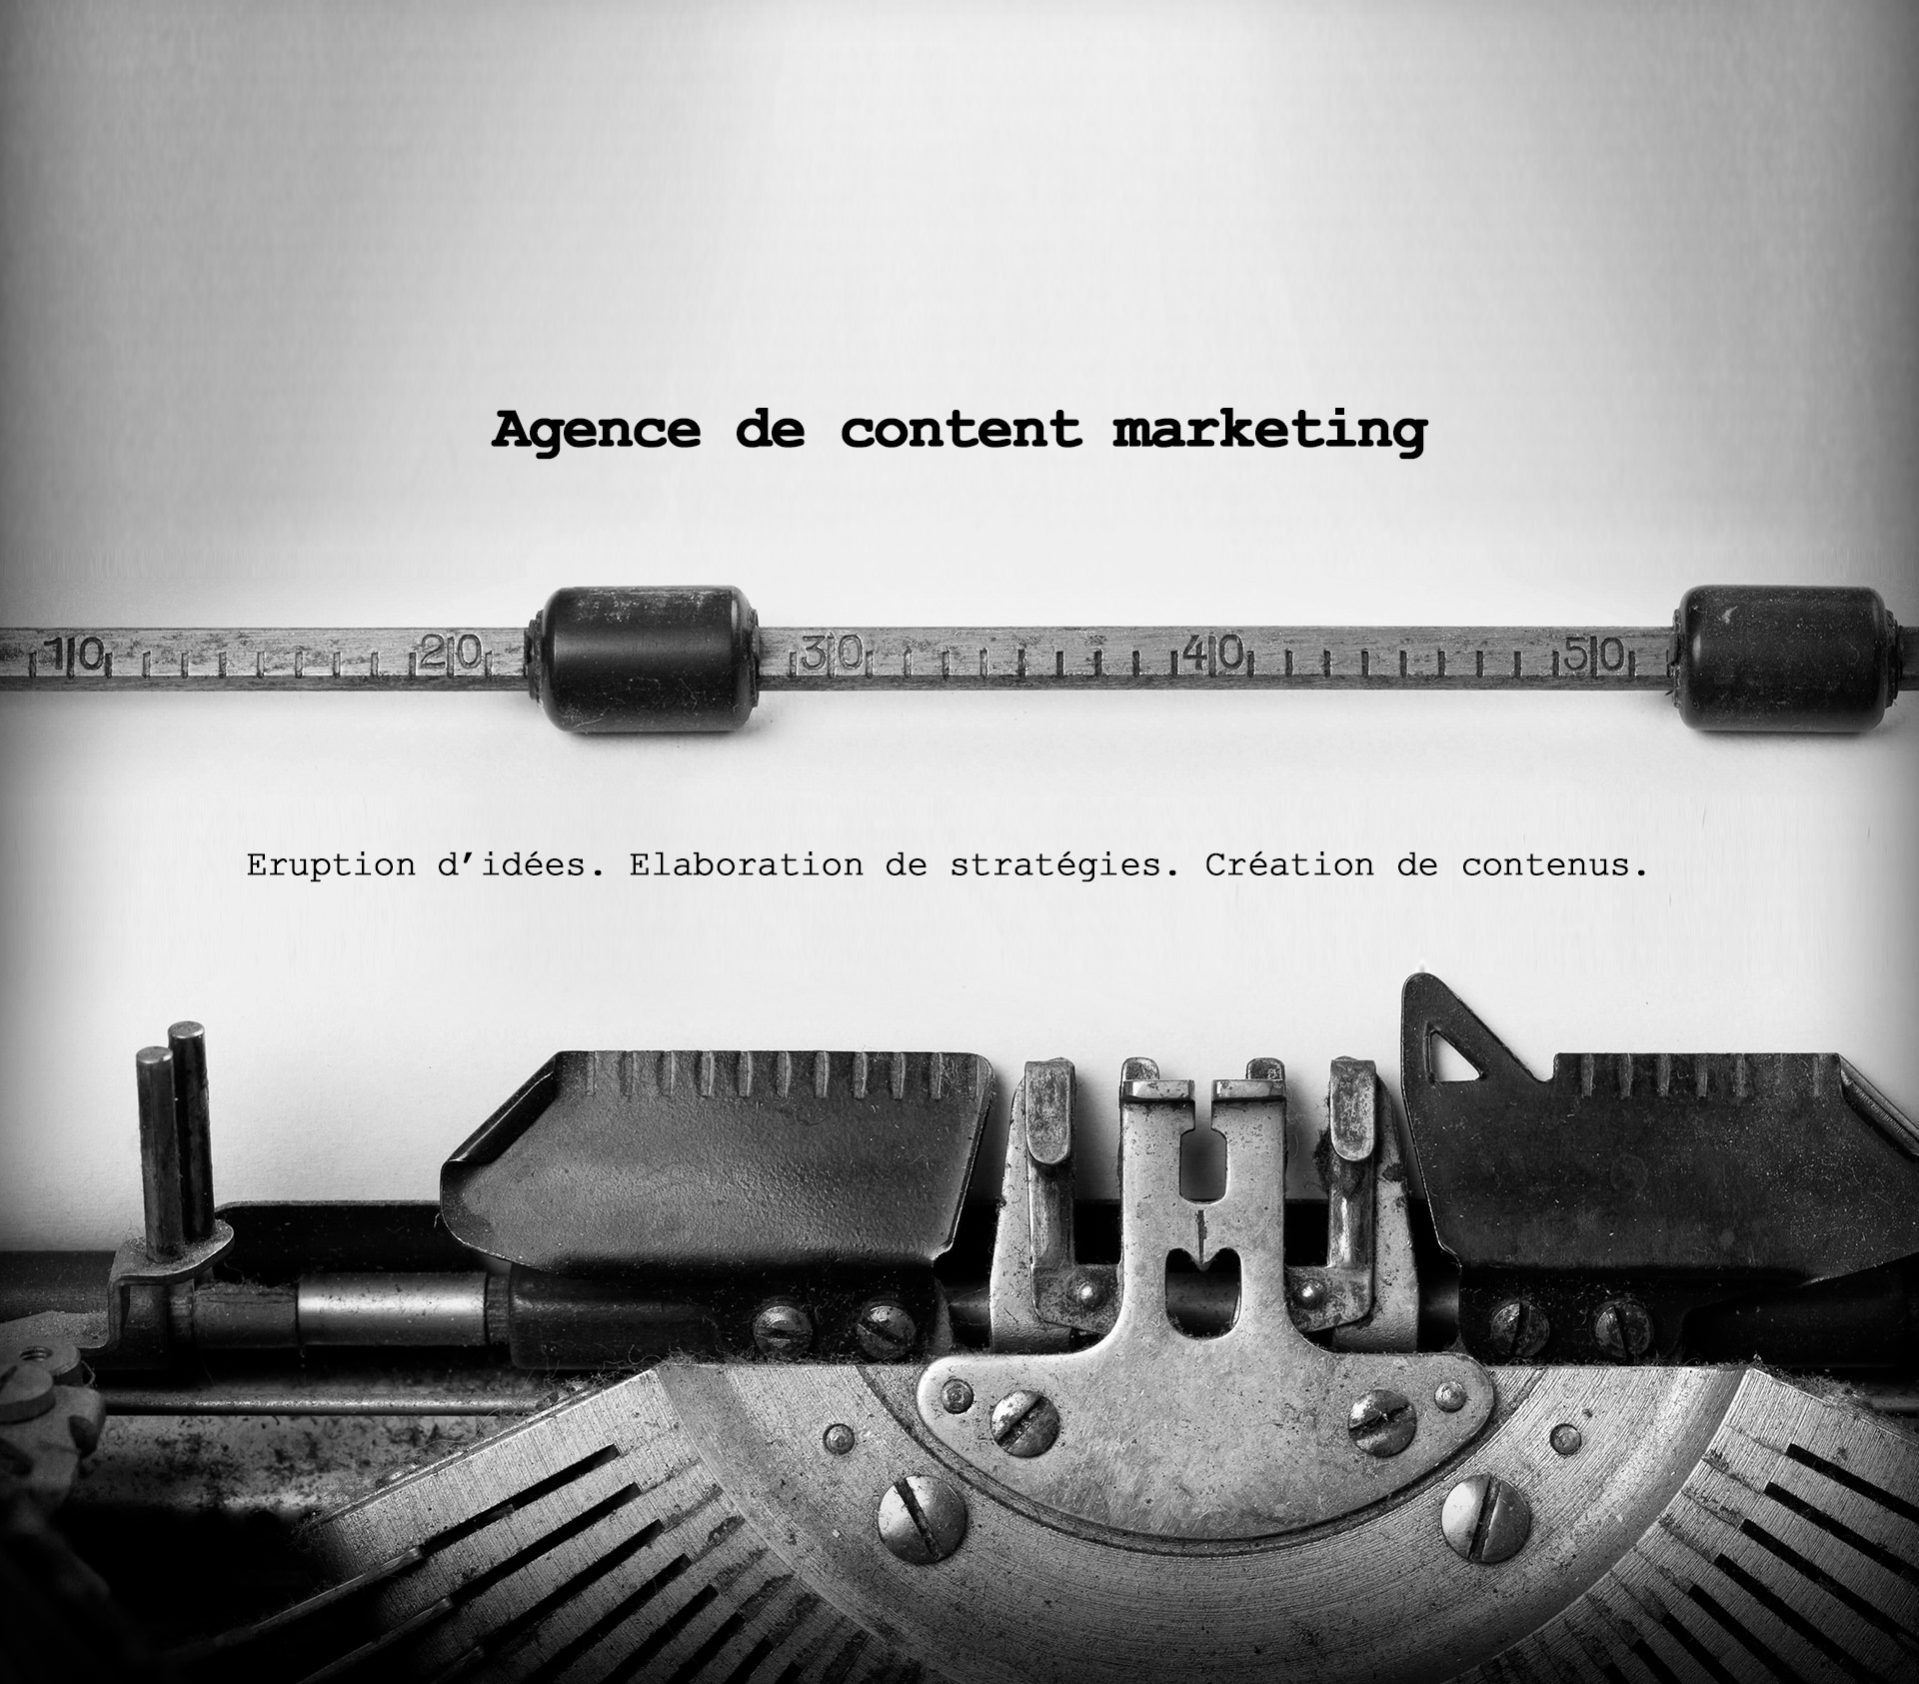 Agence de content marketing